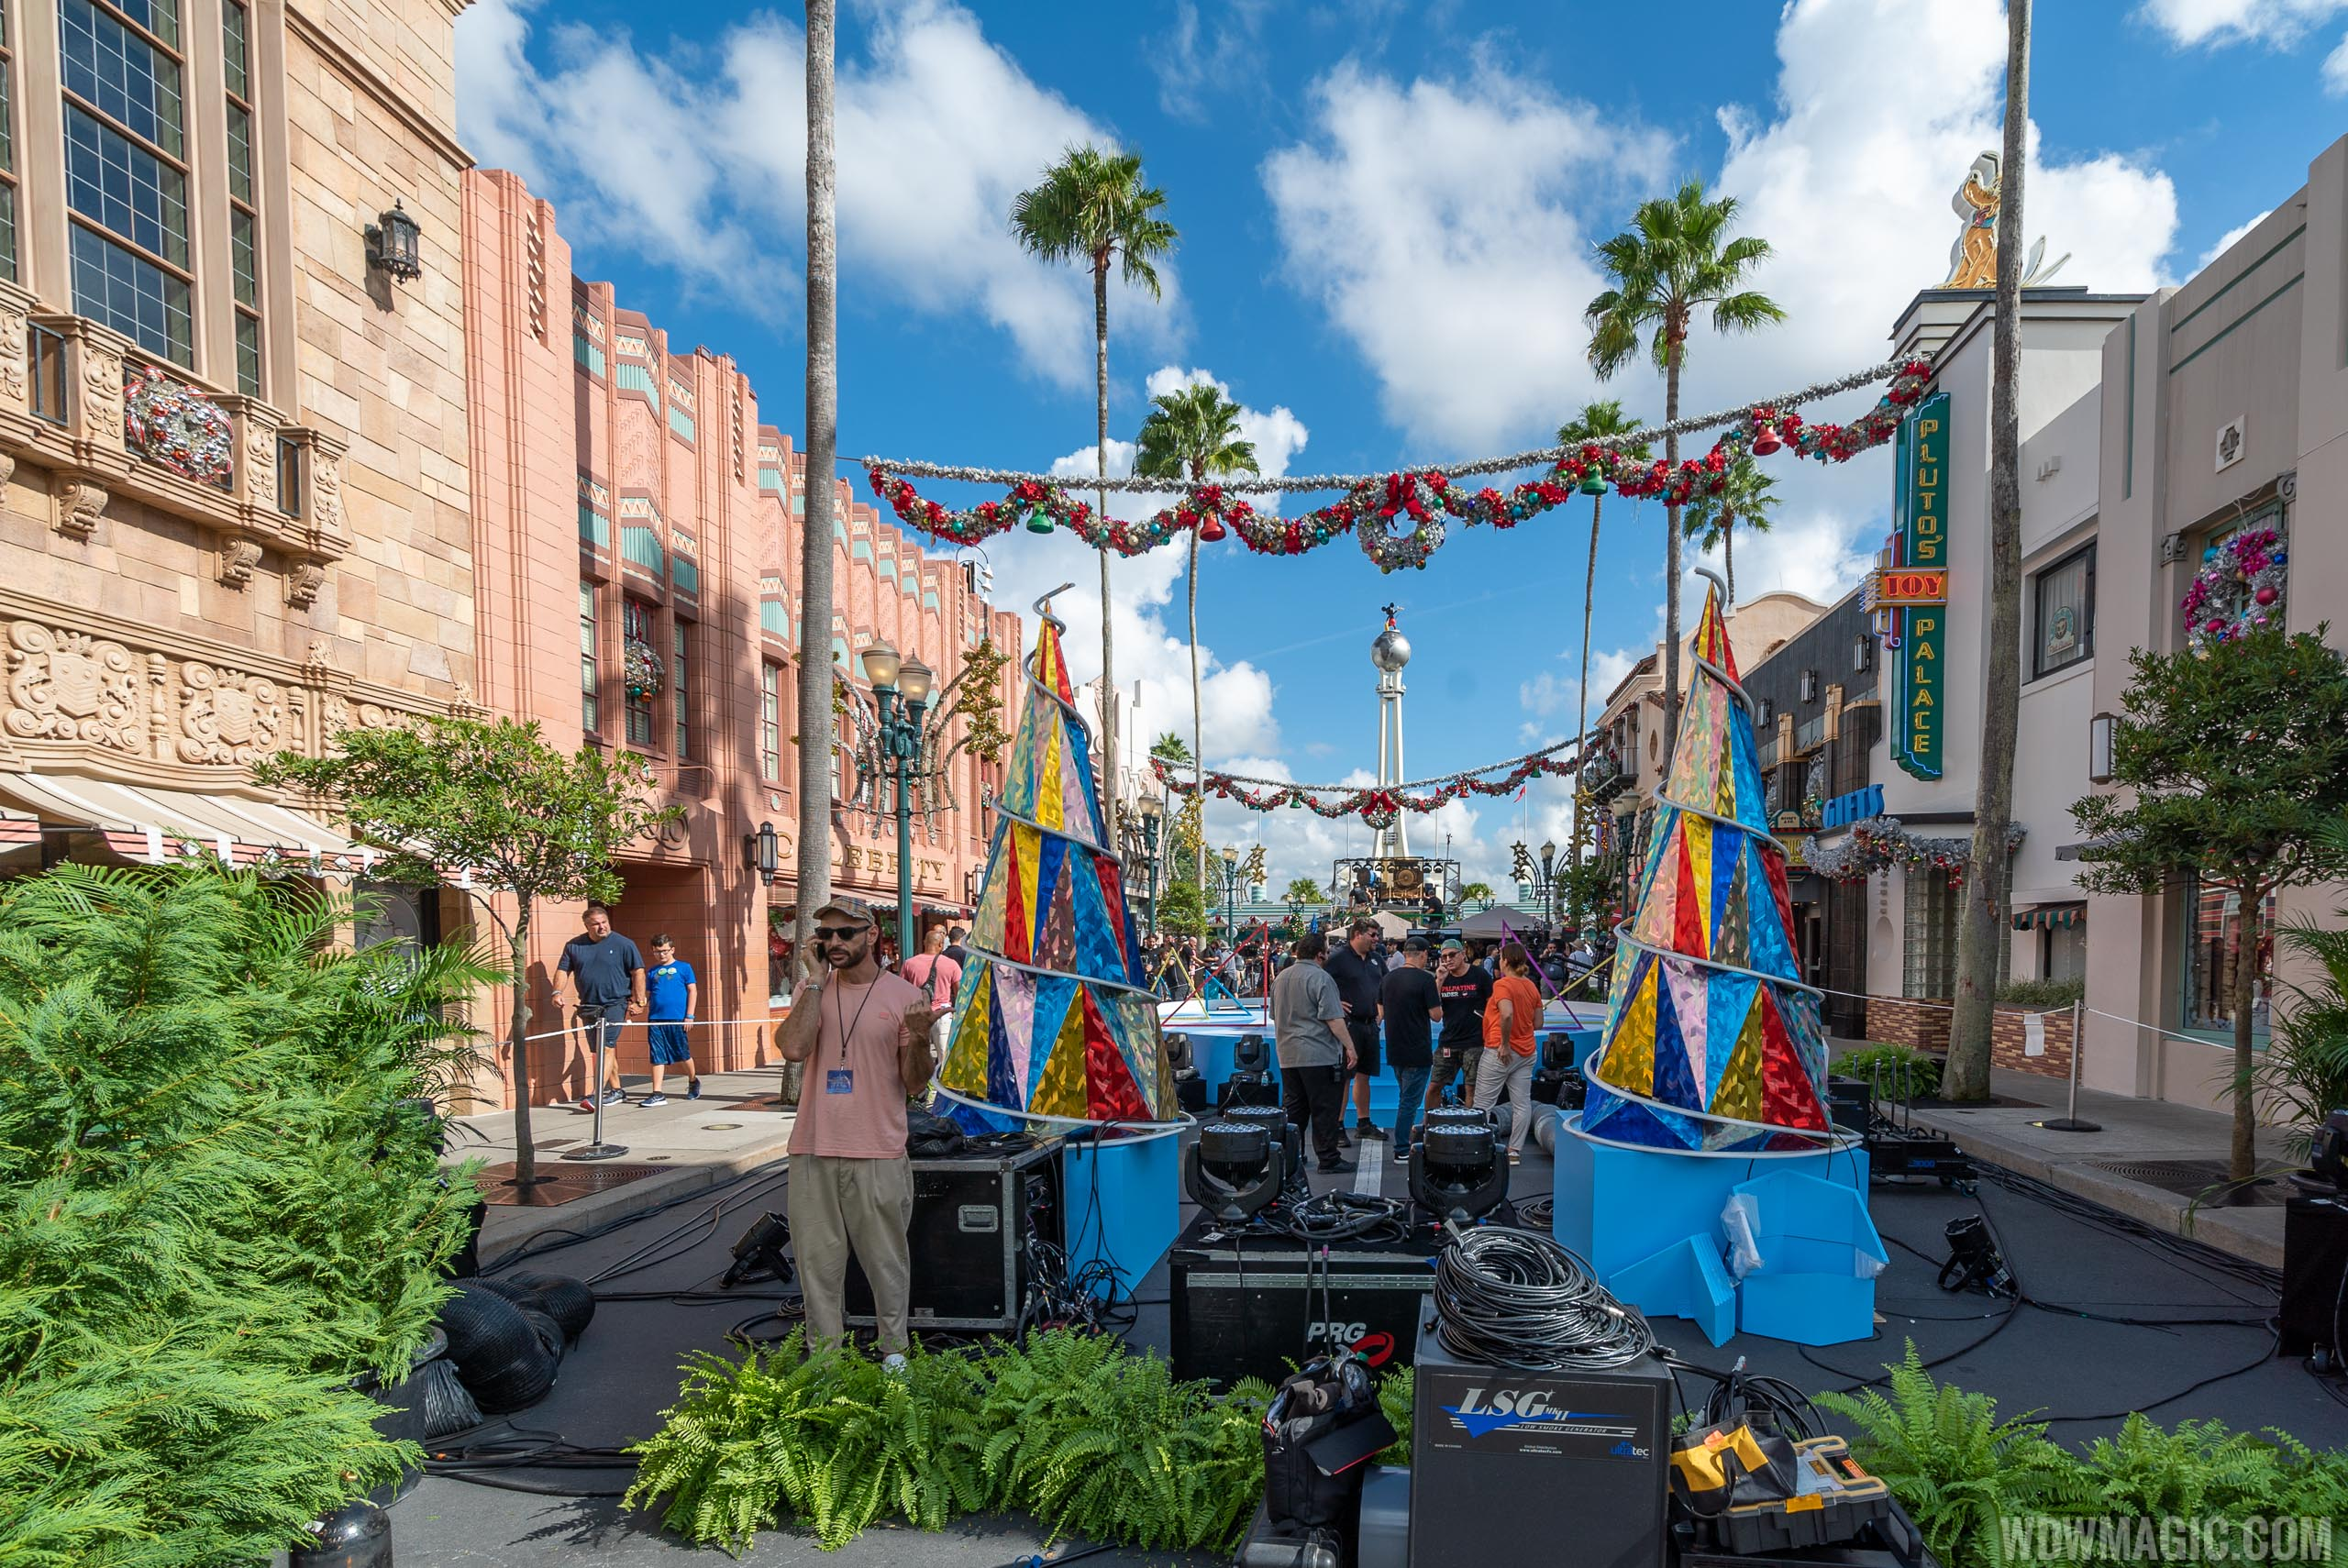 ABC Holiday Specials filming at Disney's Hollywood Studios 2019